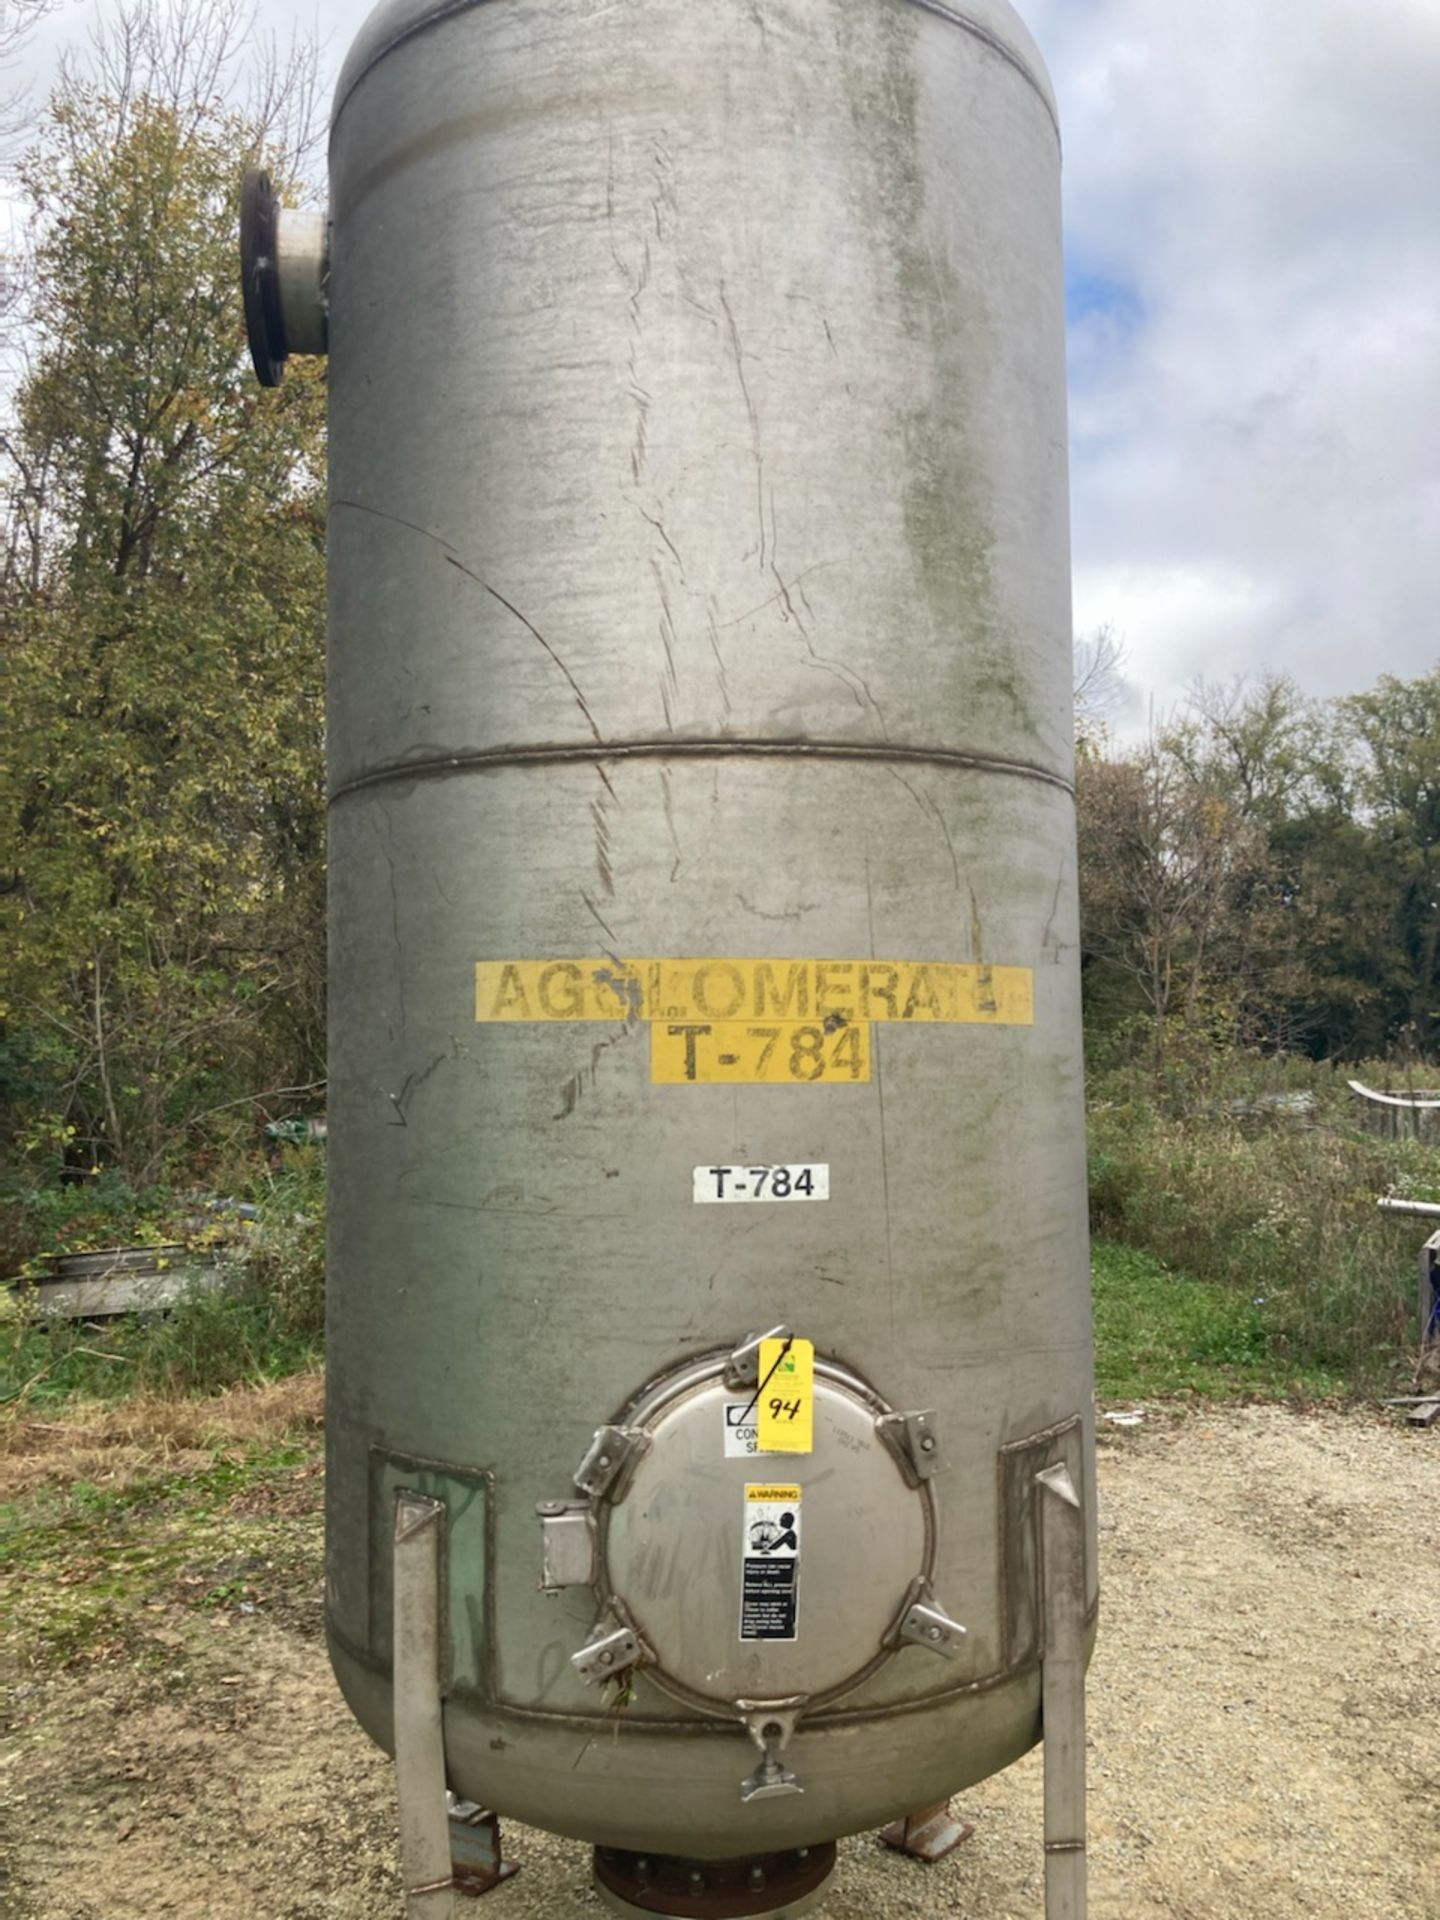 Stainless Steel Tank with Manway - Approximate 825 Gallons